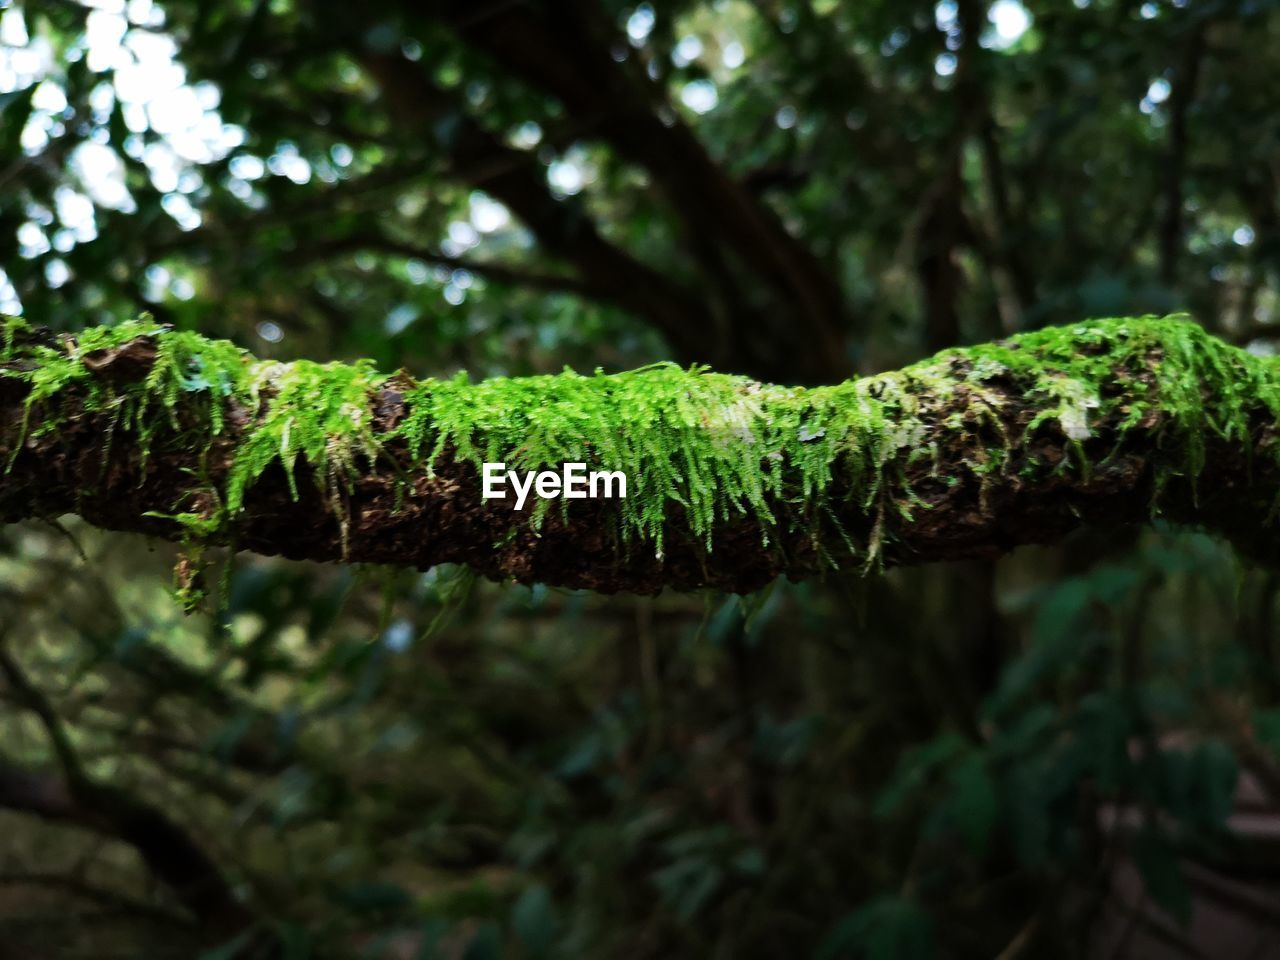 green color, plant, growth, close-up, plant part, nature, focus on foreground, no people, leaf, day, tree, beauty in nature, moss, selective focus, outdoors, tranquility, branch, freshness, water, rainforest, purity